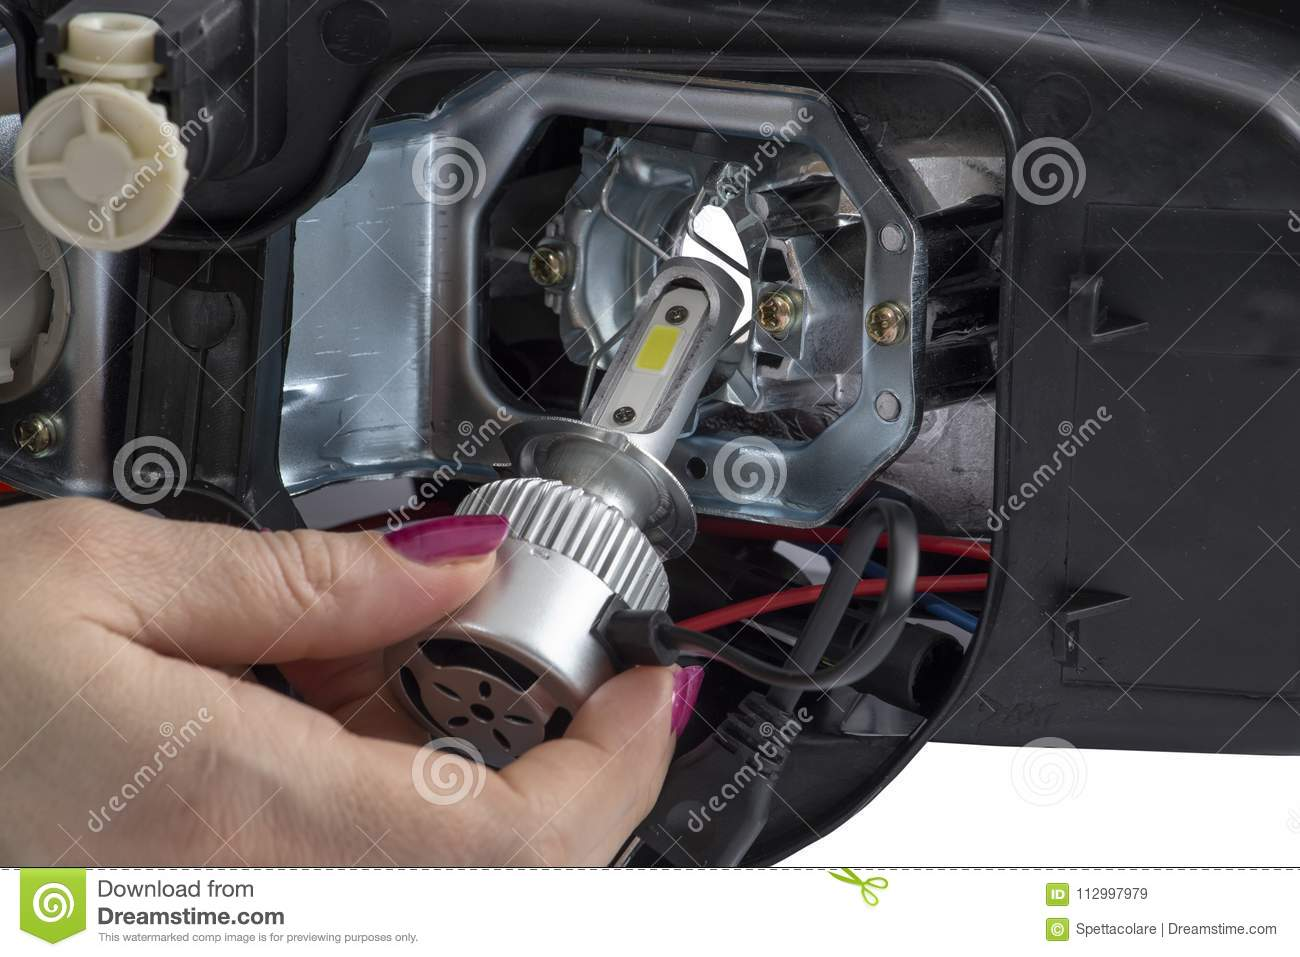 hight resolution of woman hand installing led headlight bulb with wires abstract modern car lighting technology